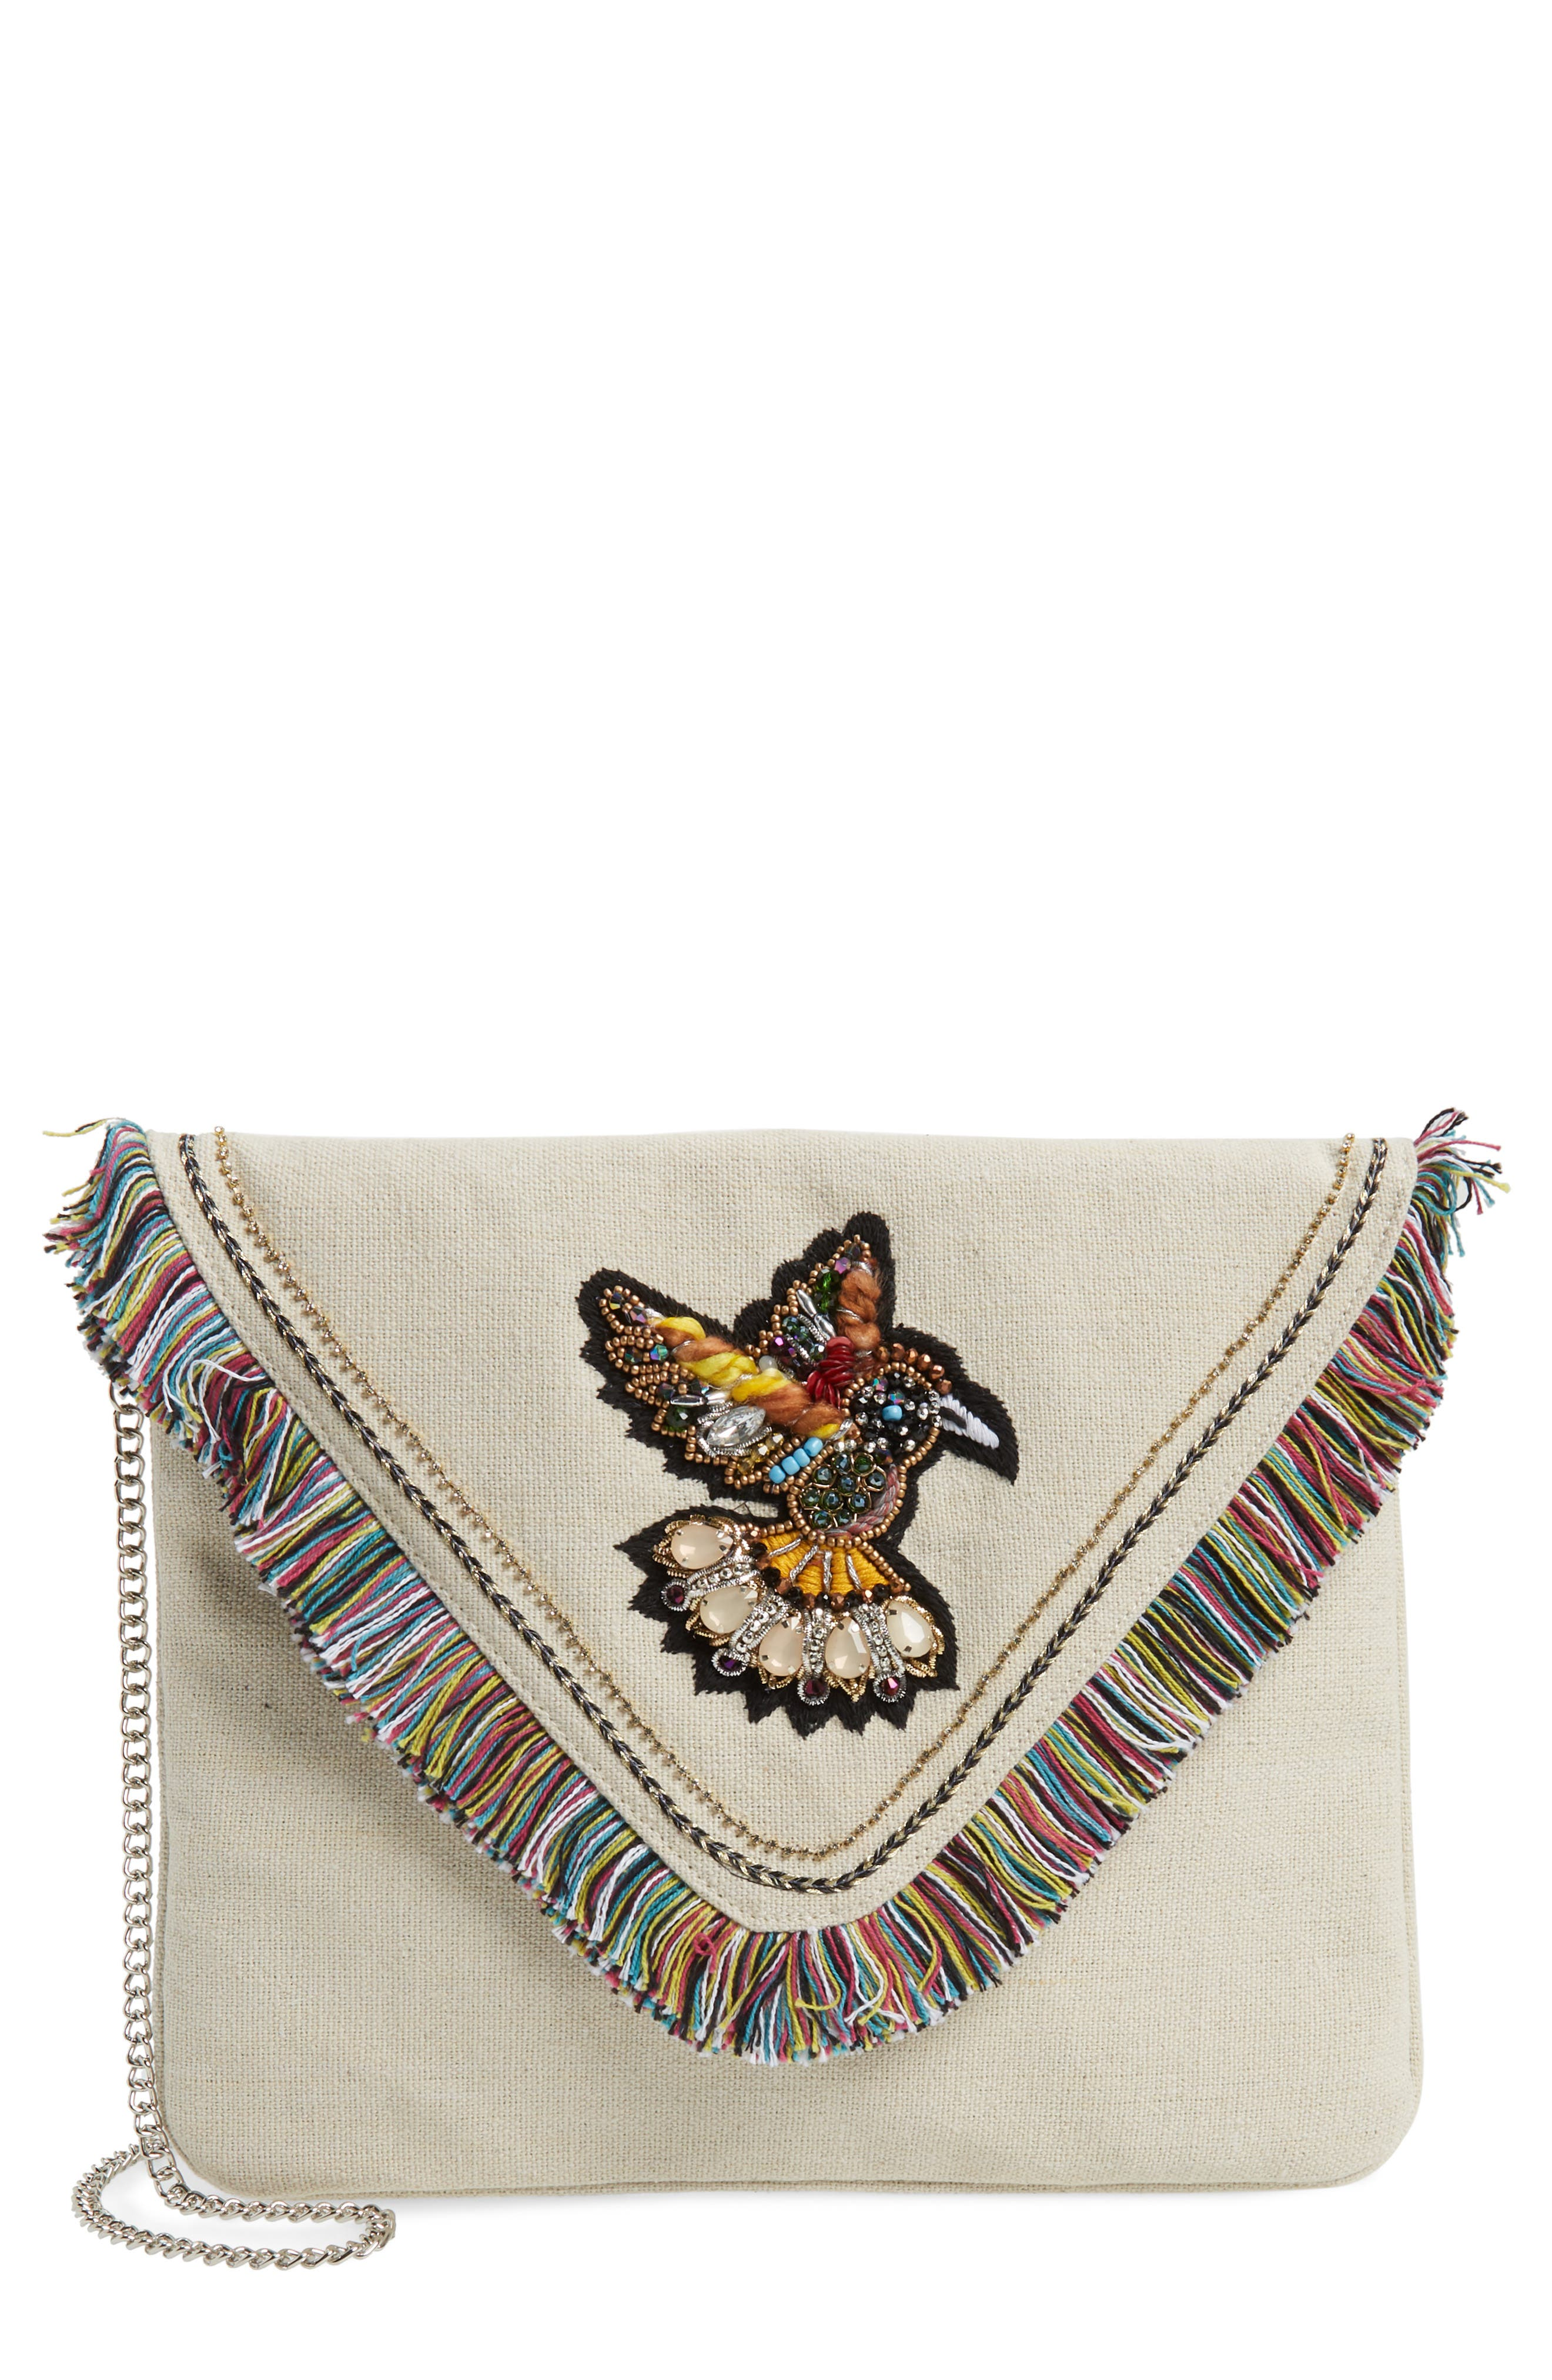 Bird Appliqué Oversize Envelope Clutch,                             Main thumbnail 1, color,                             250